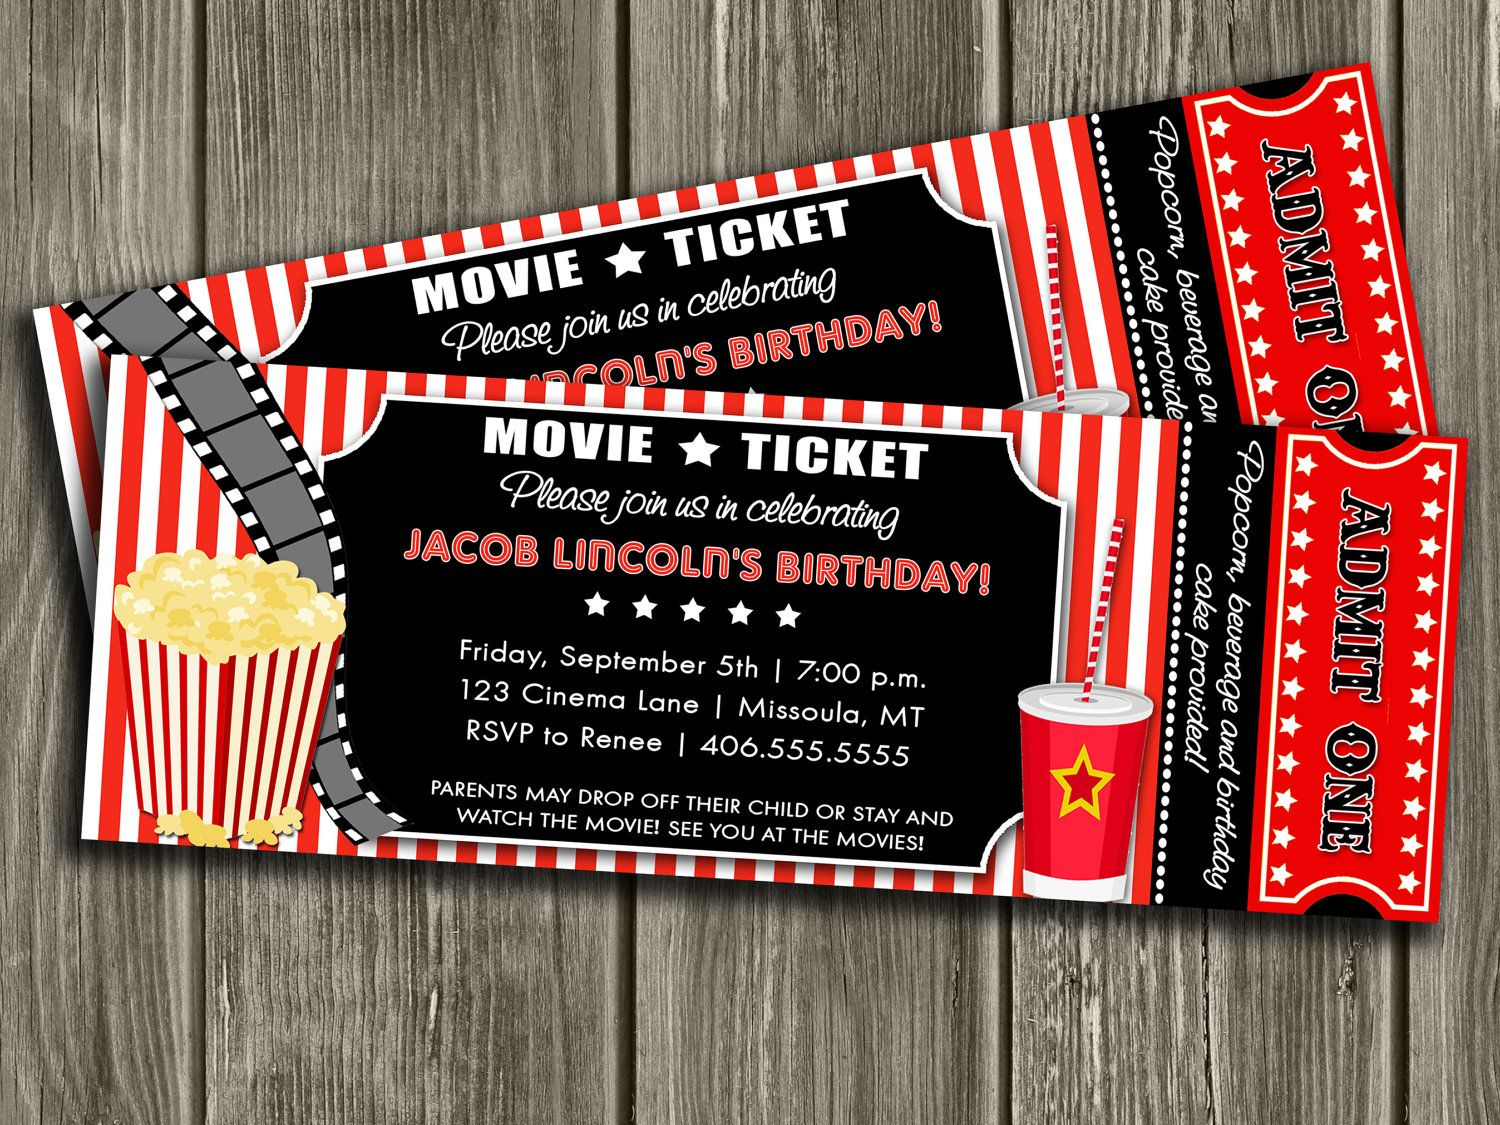 Transformative image with regard to printable movie ticket invitation